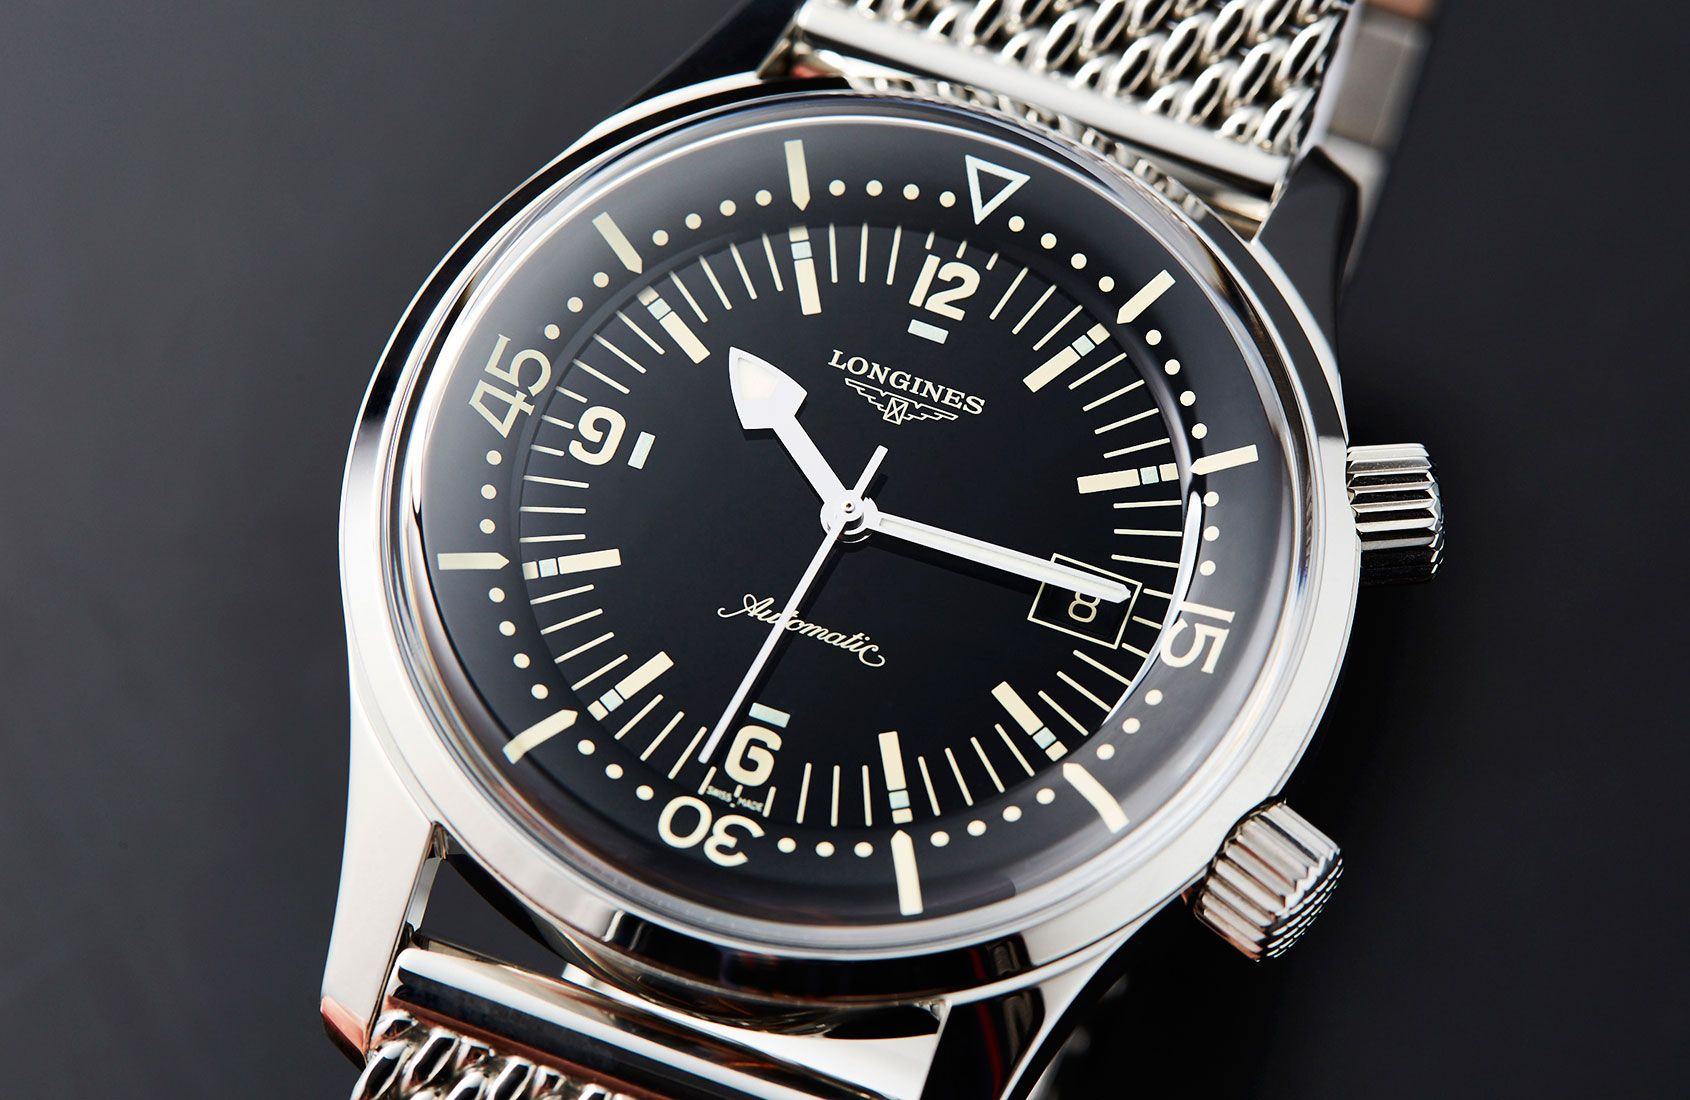 summer divers to up sites spruce outfit s sixty forbes five watches com all oris types images finds